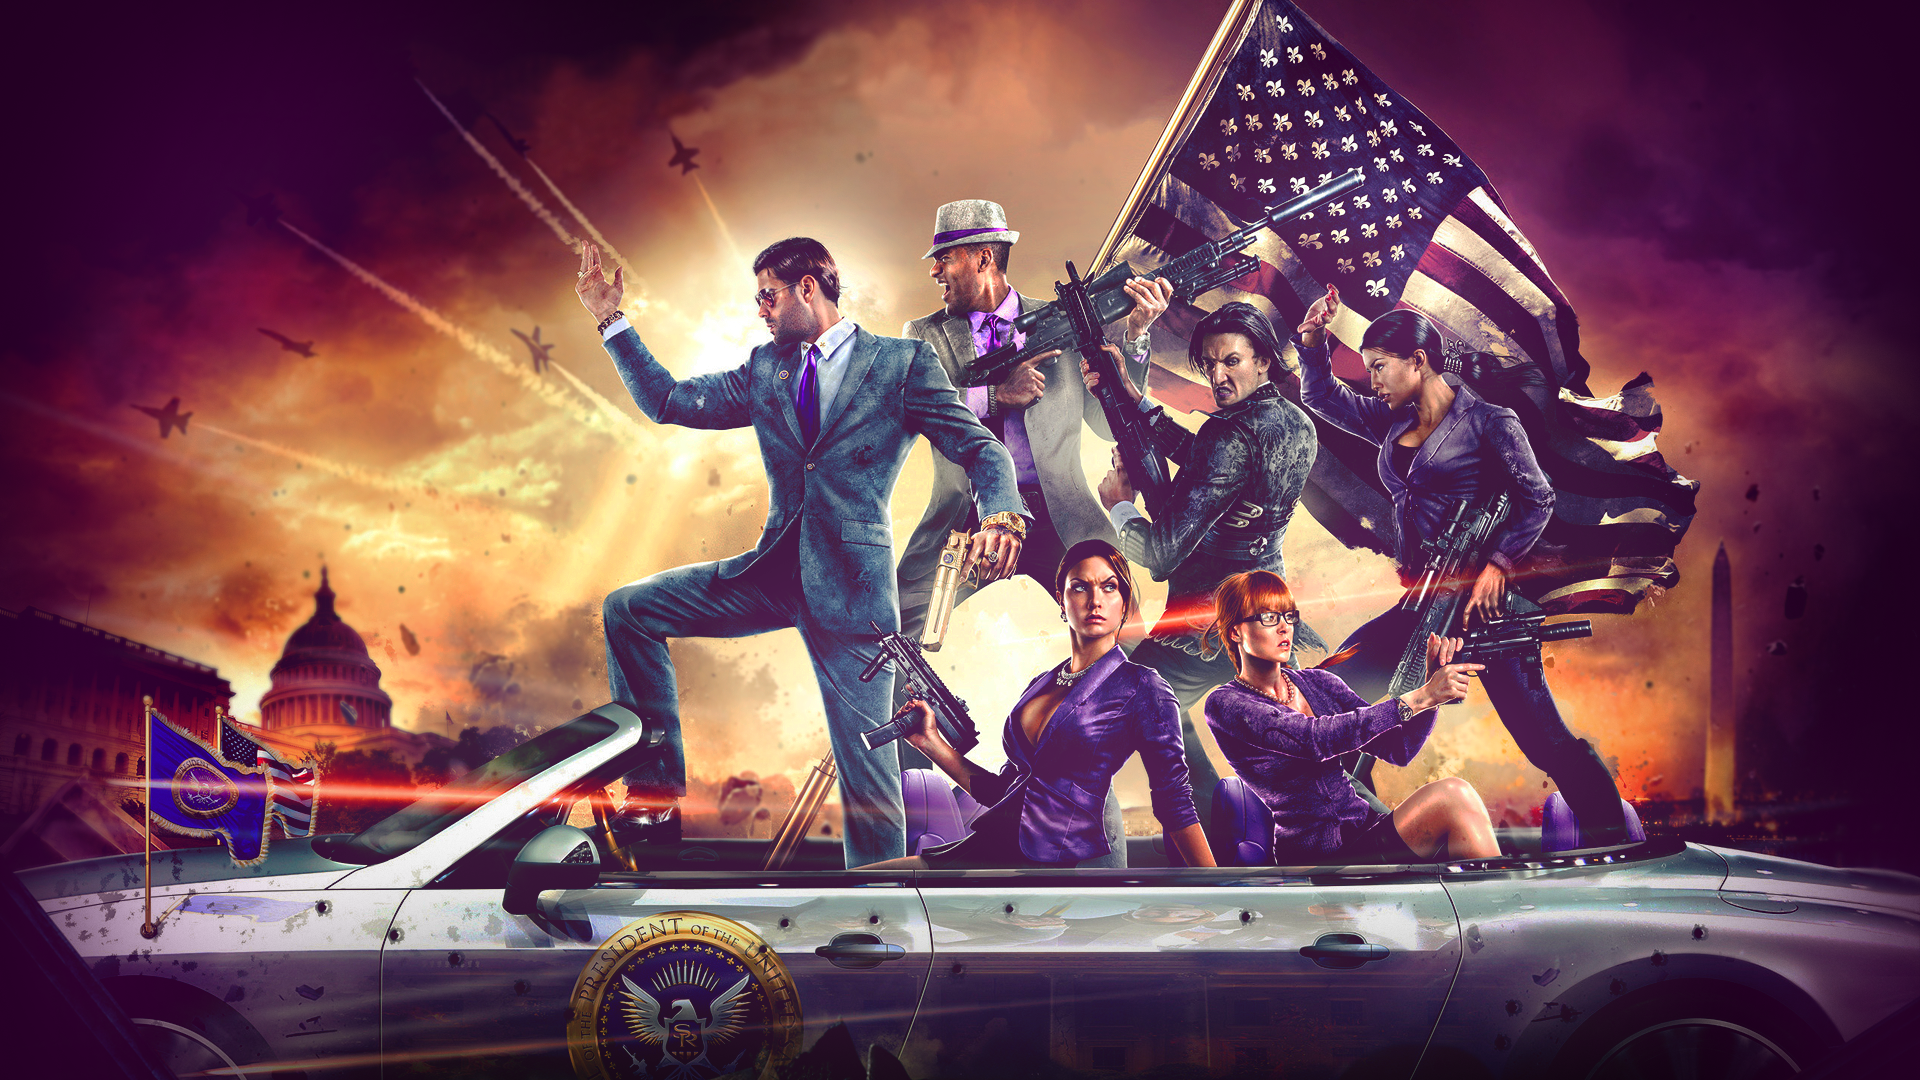 Full Hd Car Logos Wallpapers Saints Row Iv Full Hd Wallpaper And Background 1920x1080